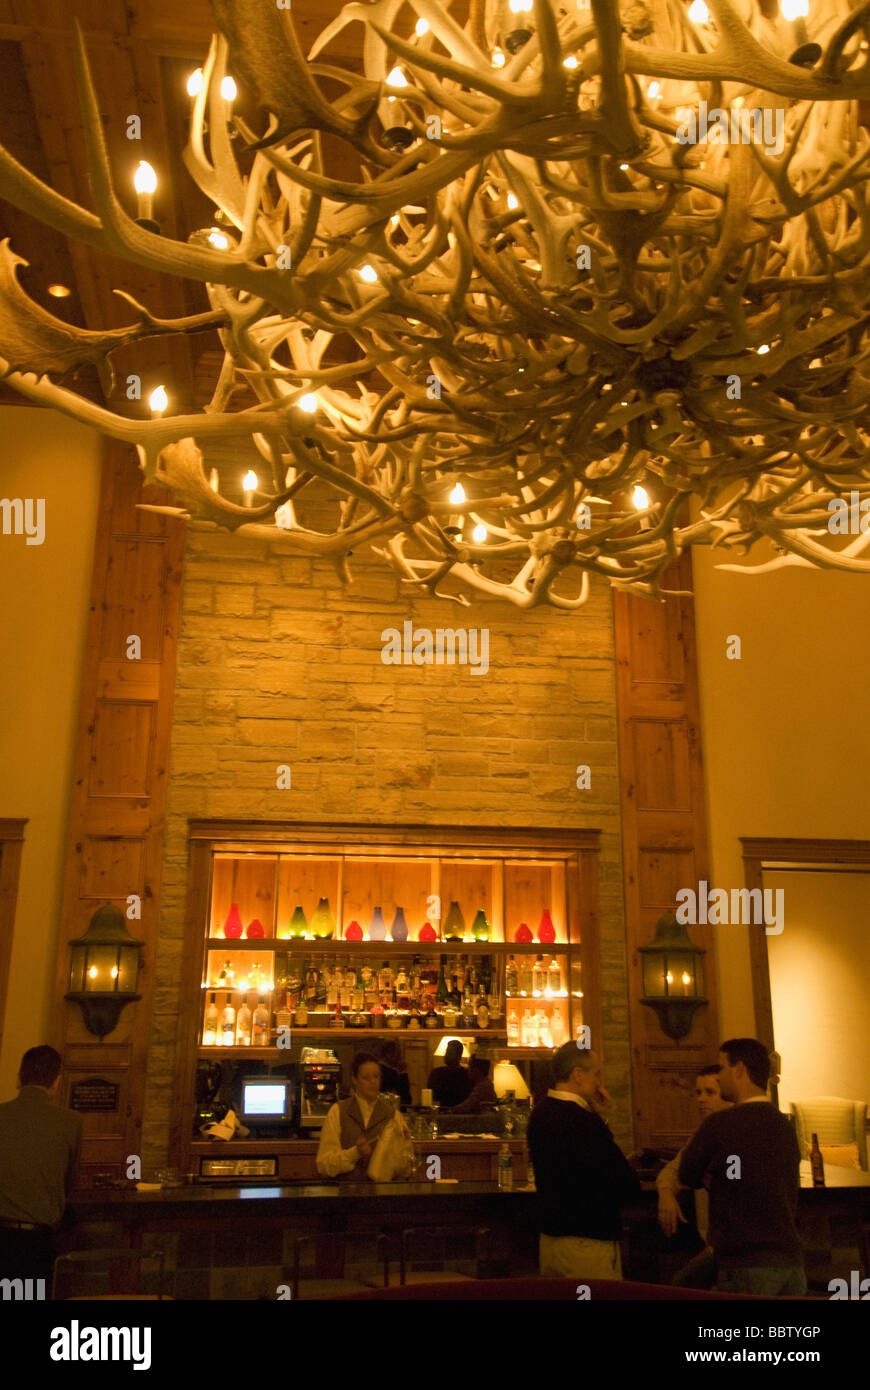 Antler chandelier in lobby and bar of the hyatt hotelin the ski antler chandelier in lobby and bar of the hyatt hotelin the ski resort of beaver creek colorado aloadofball Image collections